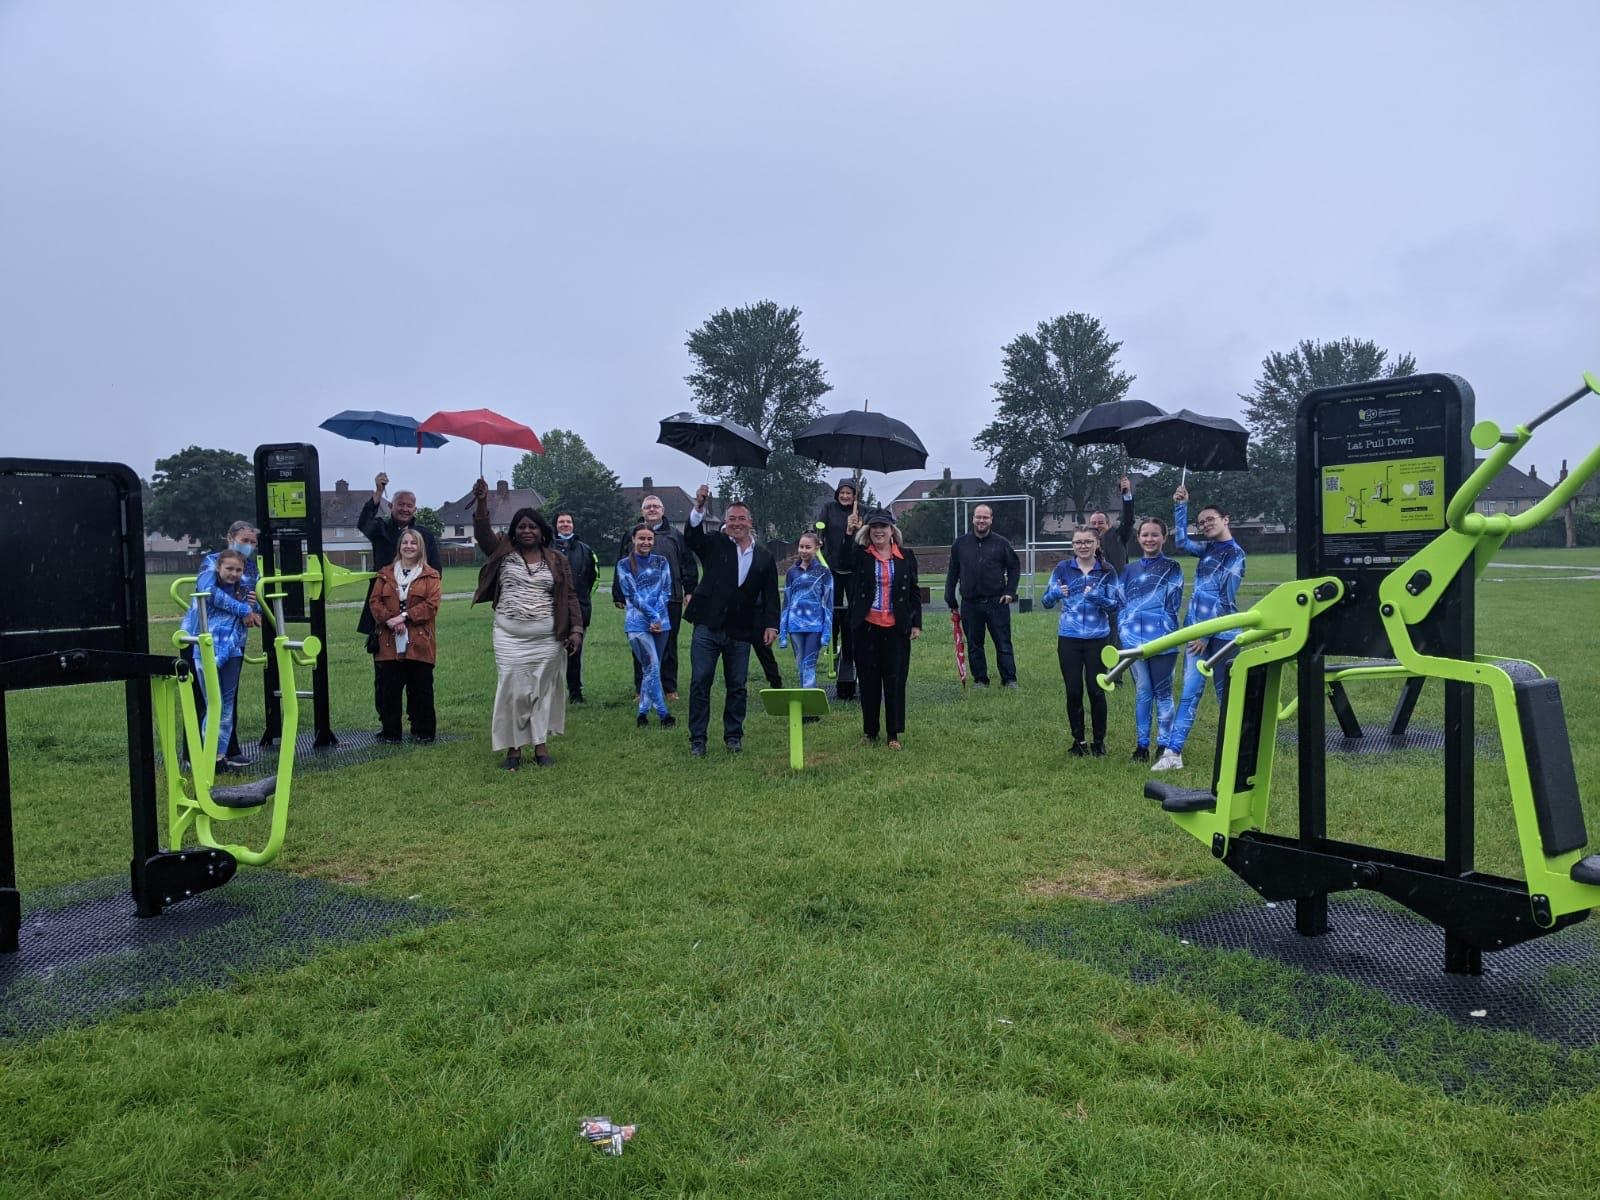 Tilbury Towns Fund Board unveil innovative outdoor equipment for Tilbury